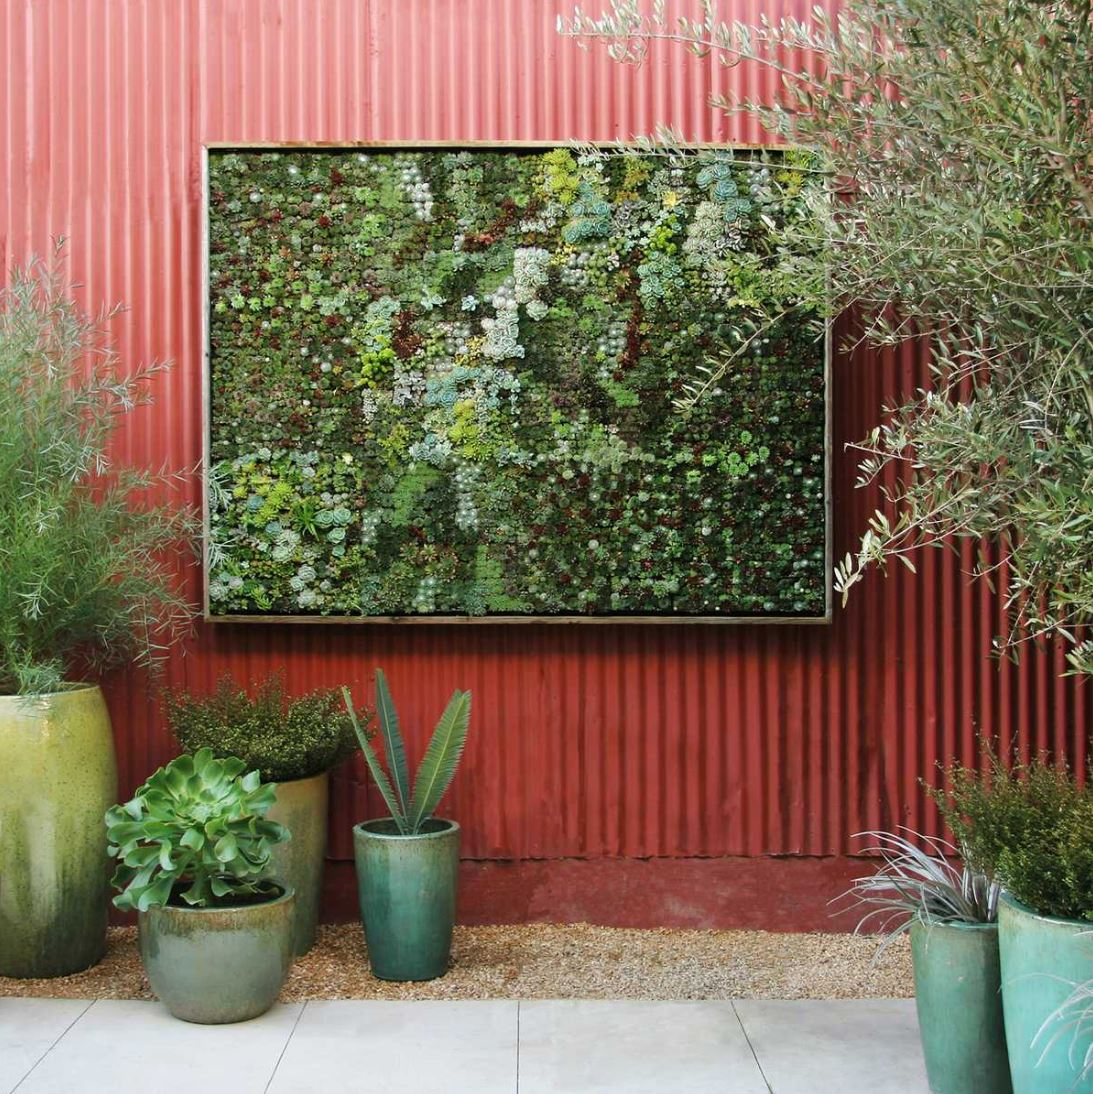 Think green 20 vertical garden ideas Garden wall color ideas